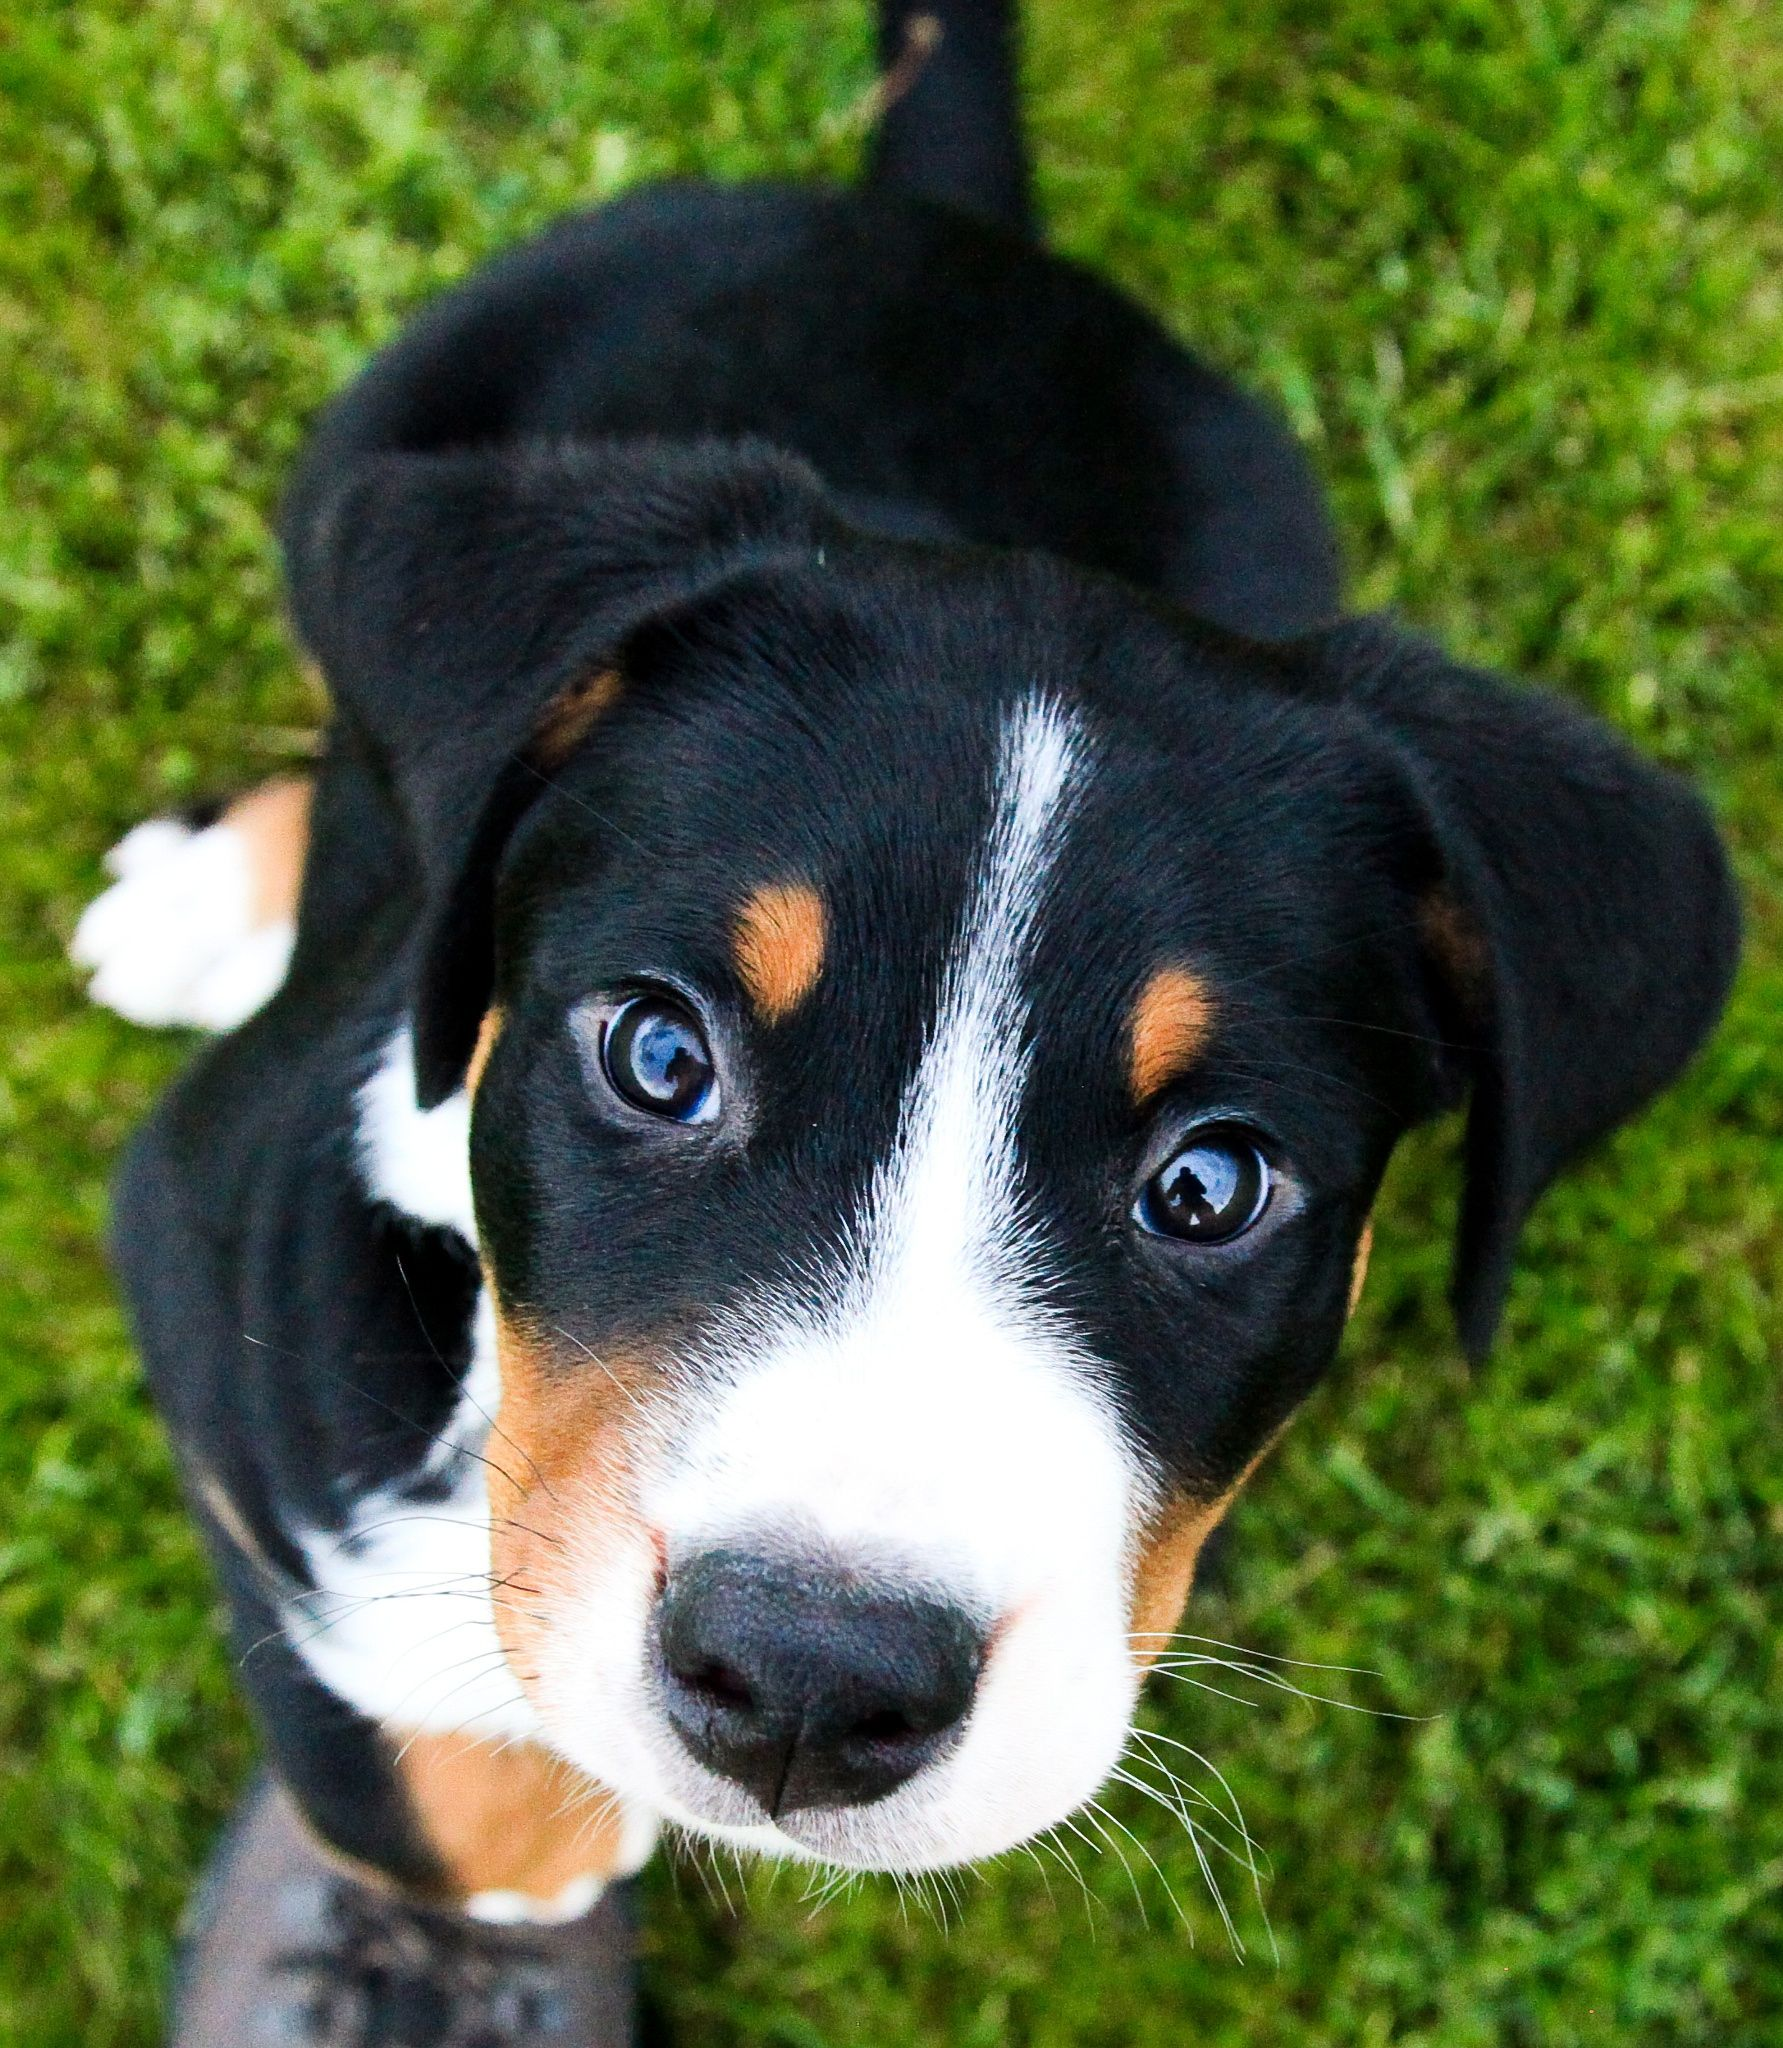 Companion Bennett Greater Swiss Mountain Dog Puppy Gornye Sobaki Sobachki Bernskij Zennenhund